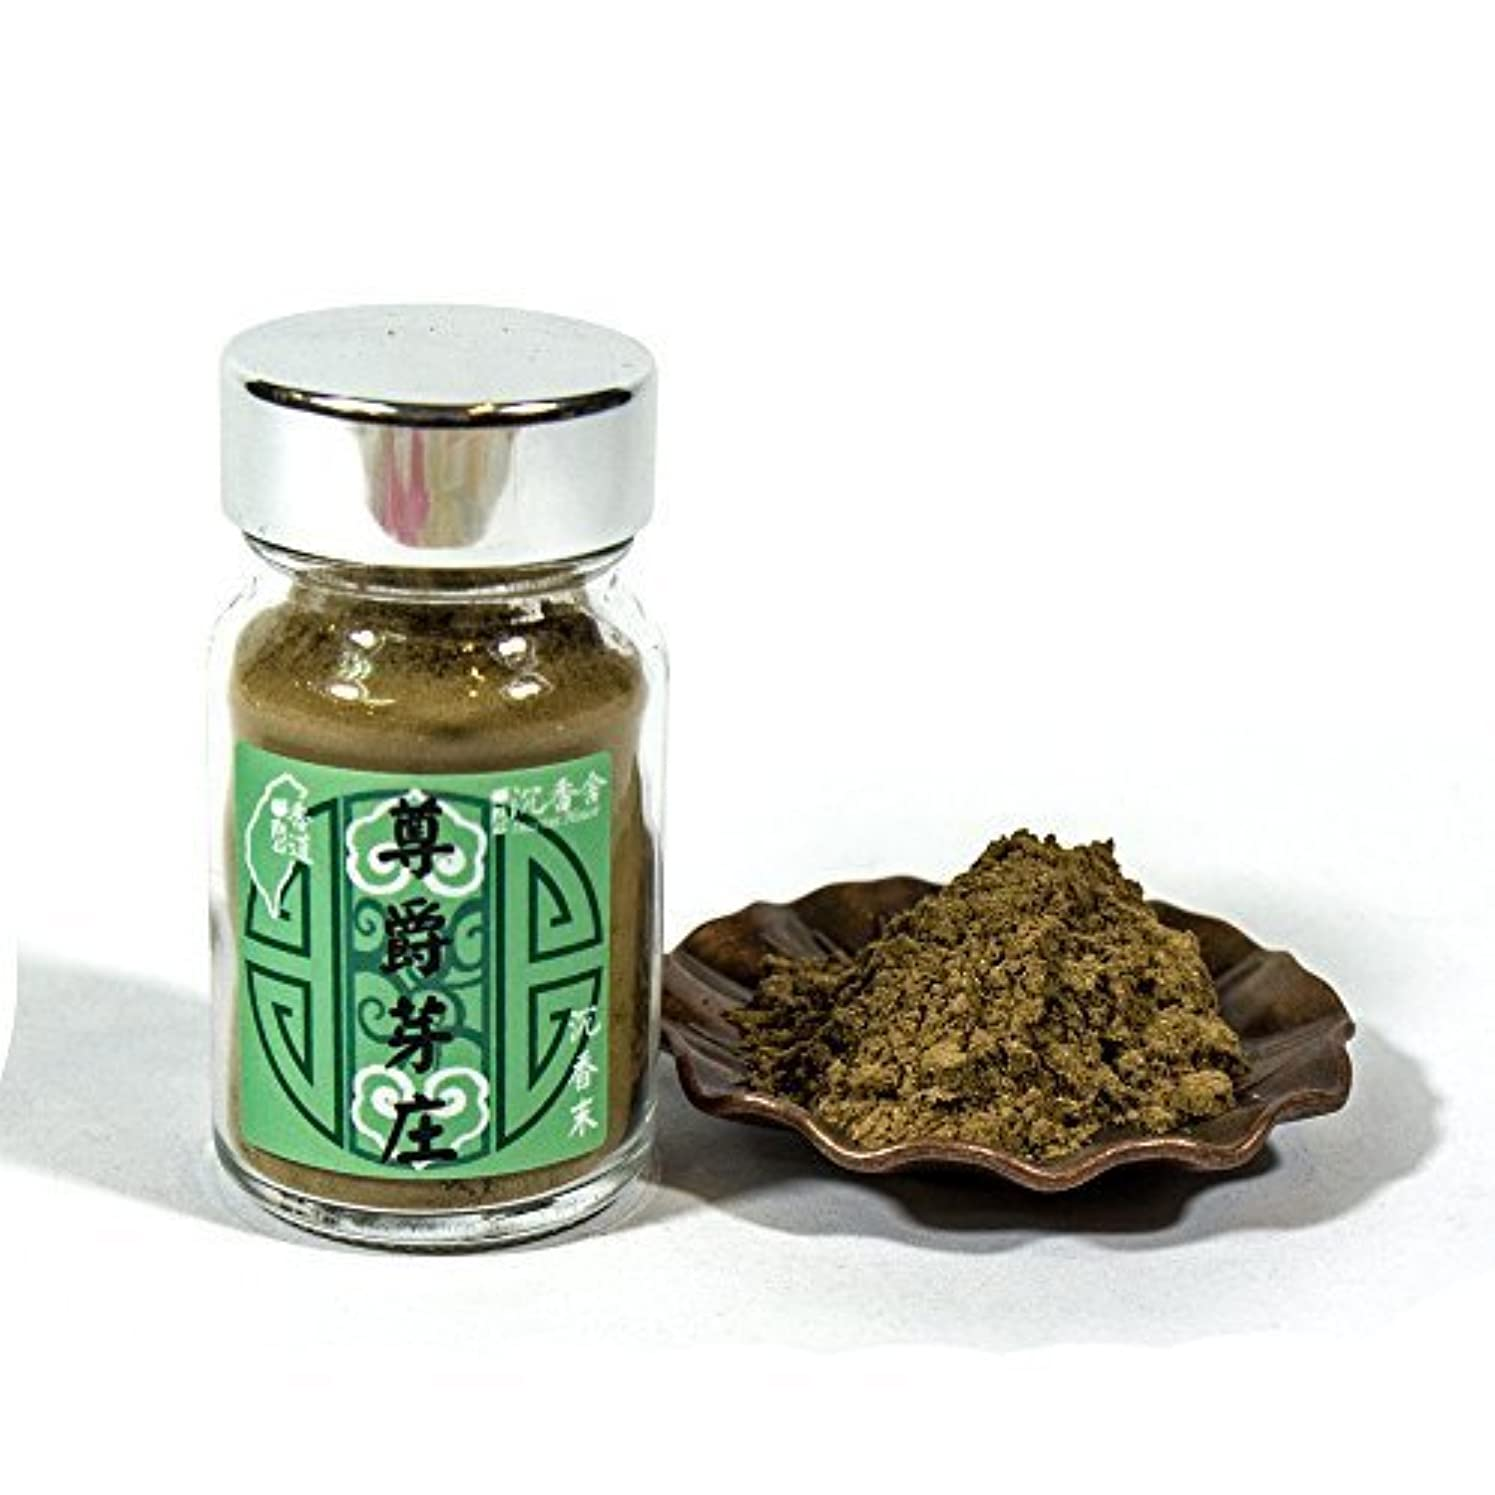 放課後未満リードAgarwood Aloeswood Top Grade Old Stock NhaTrang Chen Xiang Incense Powder 10g by IncenseHouse - Raw Material [...